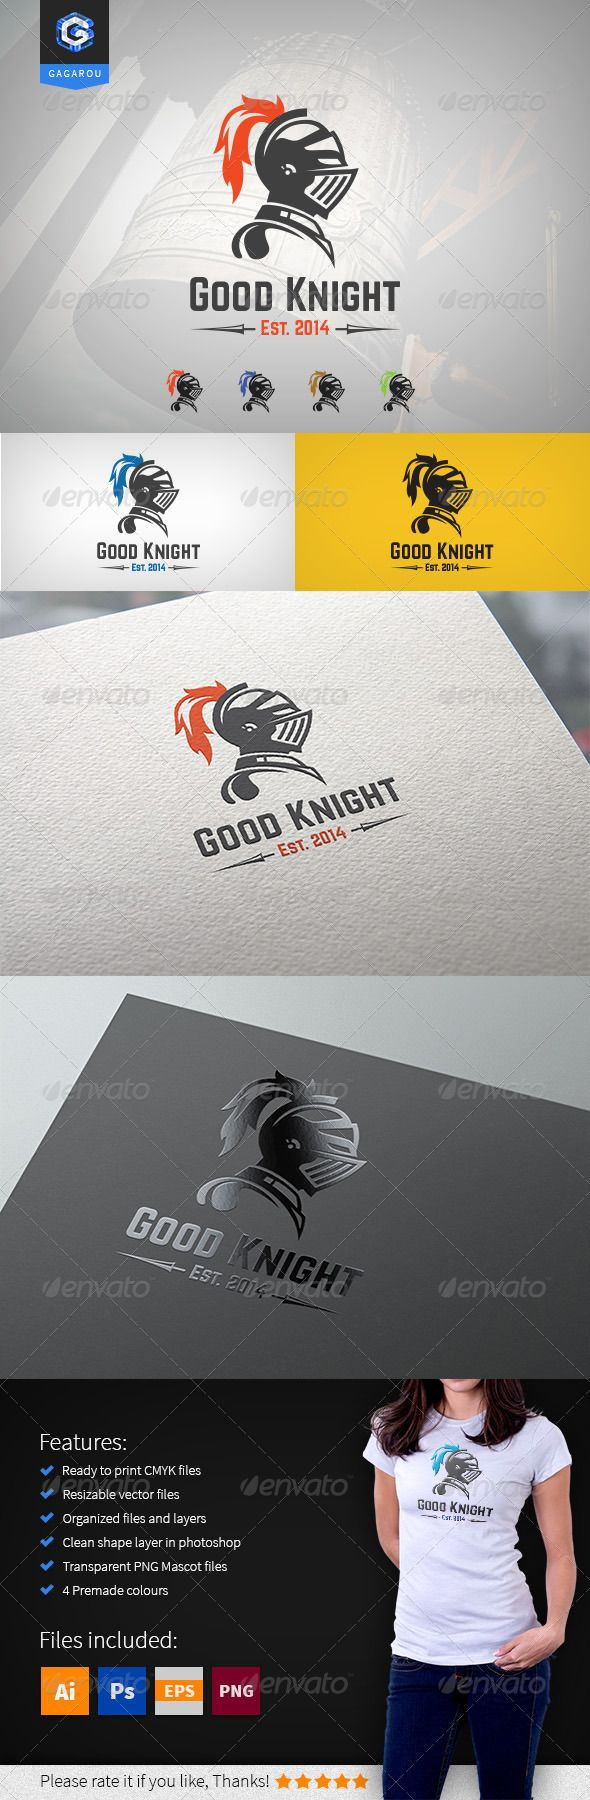 Good Knight logo — Photoshop PSD #helmet #sport • Available here → https://graphicriver.net/item/good-knight-logo/8351359?ref=pxcr